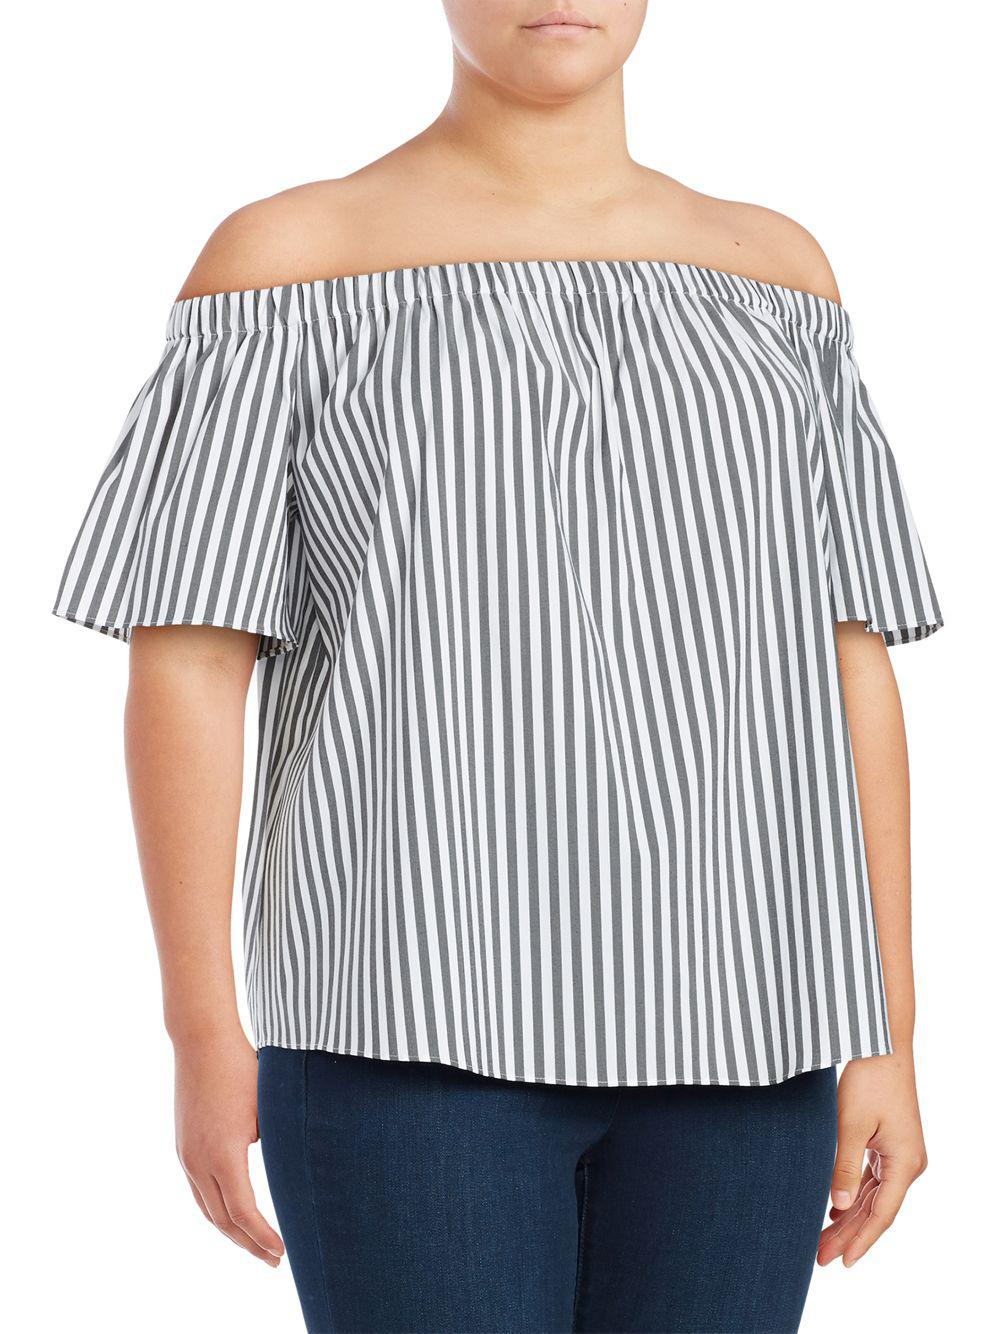 f4091936b337e Lyst - Vince Camuto Plus Striped Off-the-shoulder Top in Gray - Save 29%